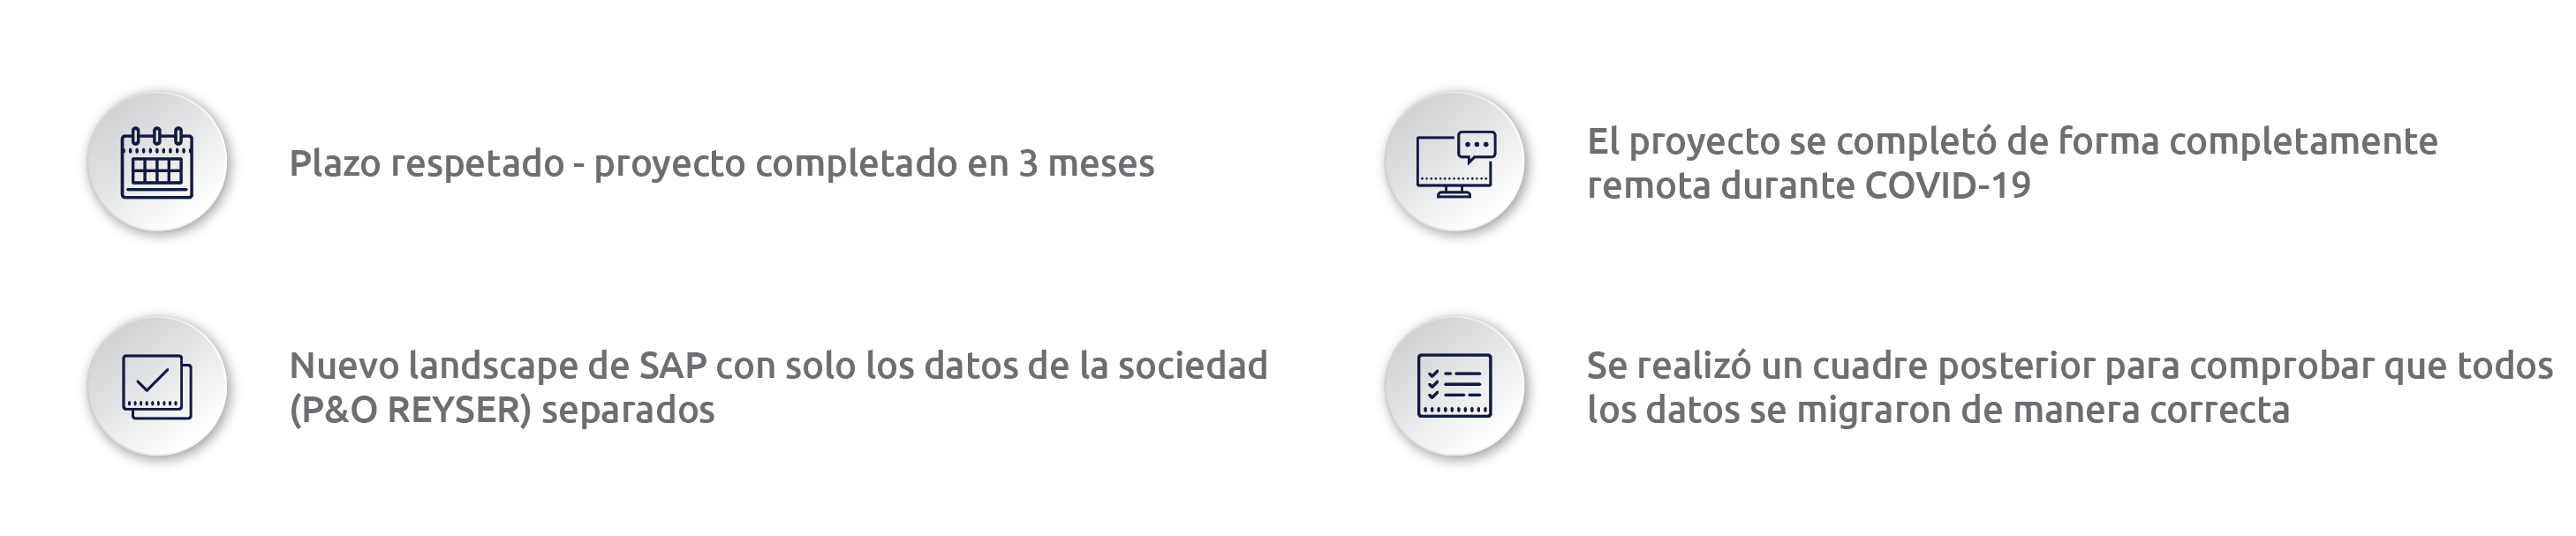 reyser-success-story-spanish-infographic-landing-page